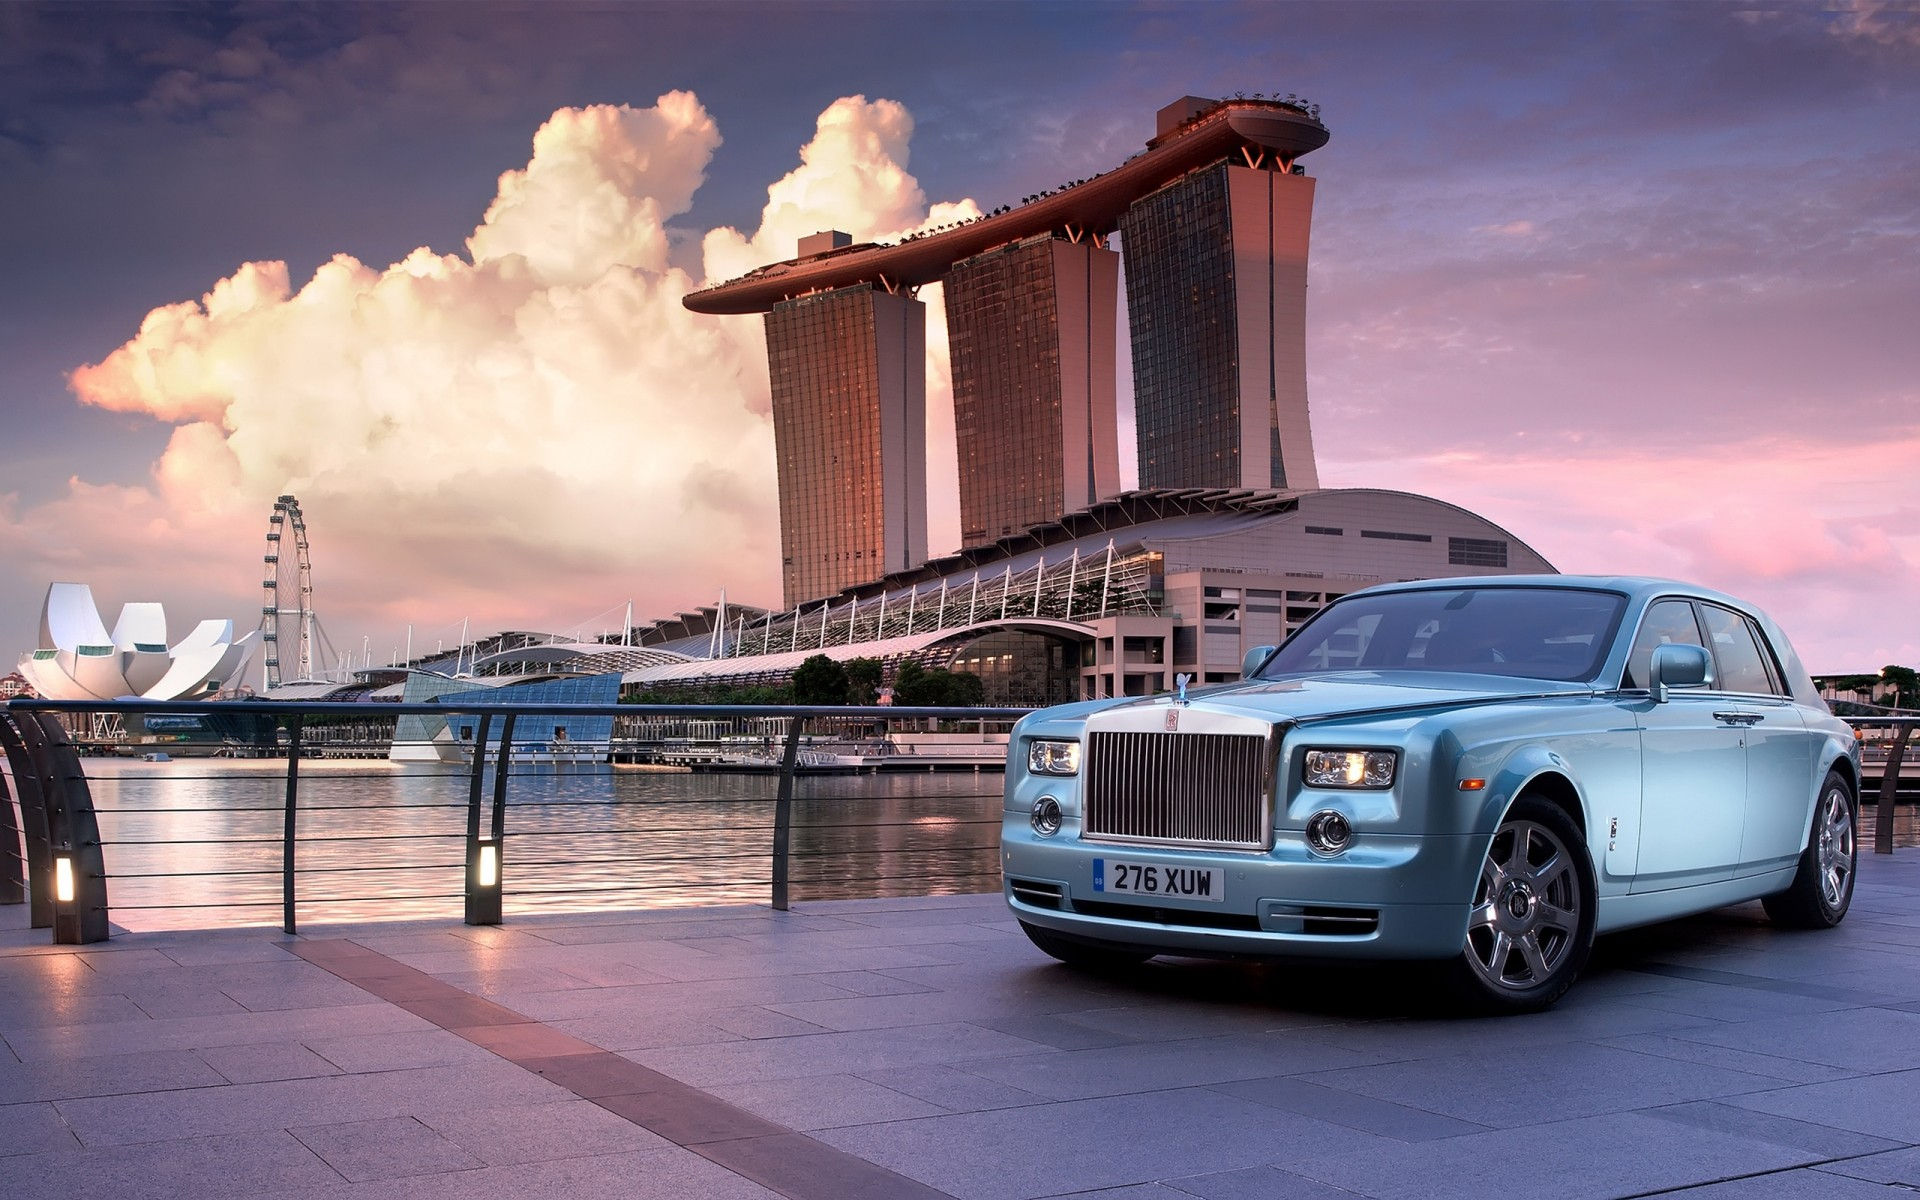 rolls royce vehicle architecture travel transportation system water bridge city sunset sky car building dusk outdoors downtown business urban